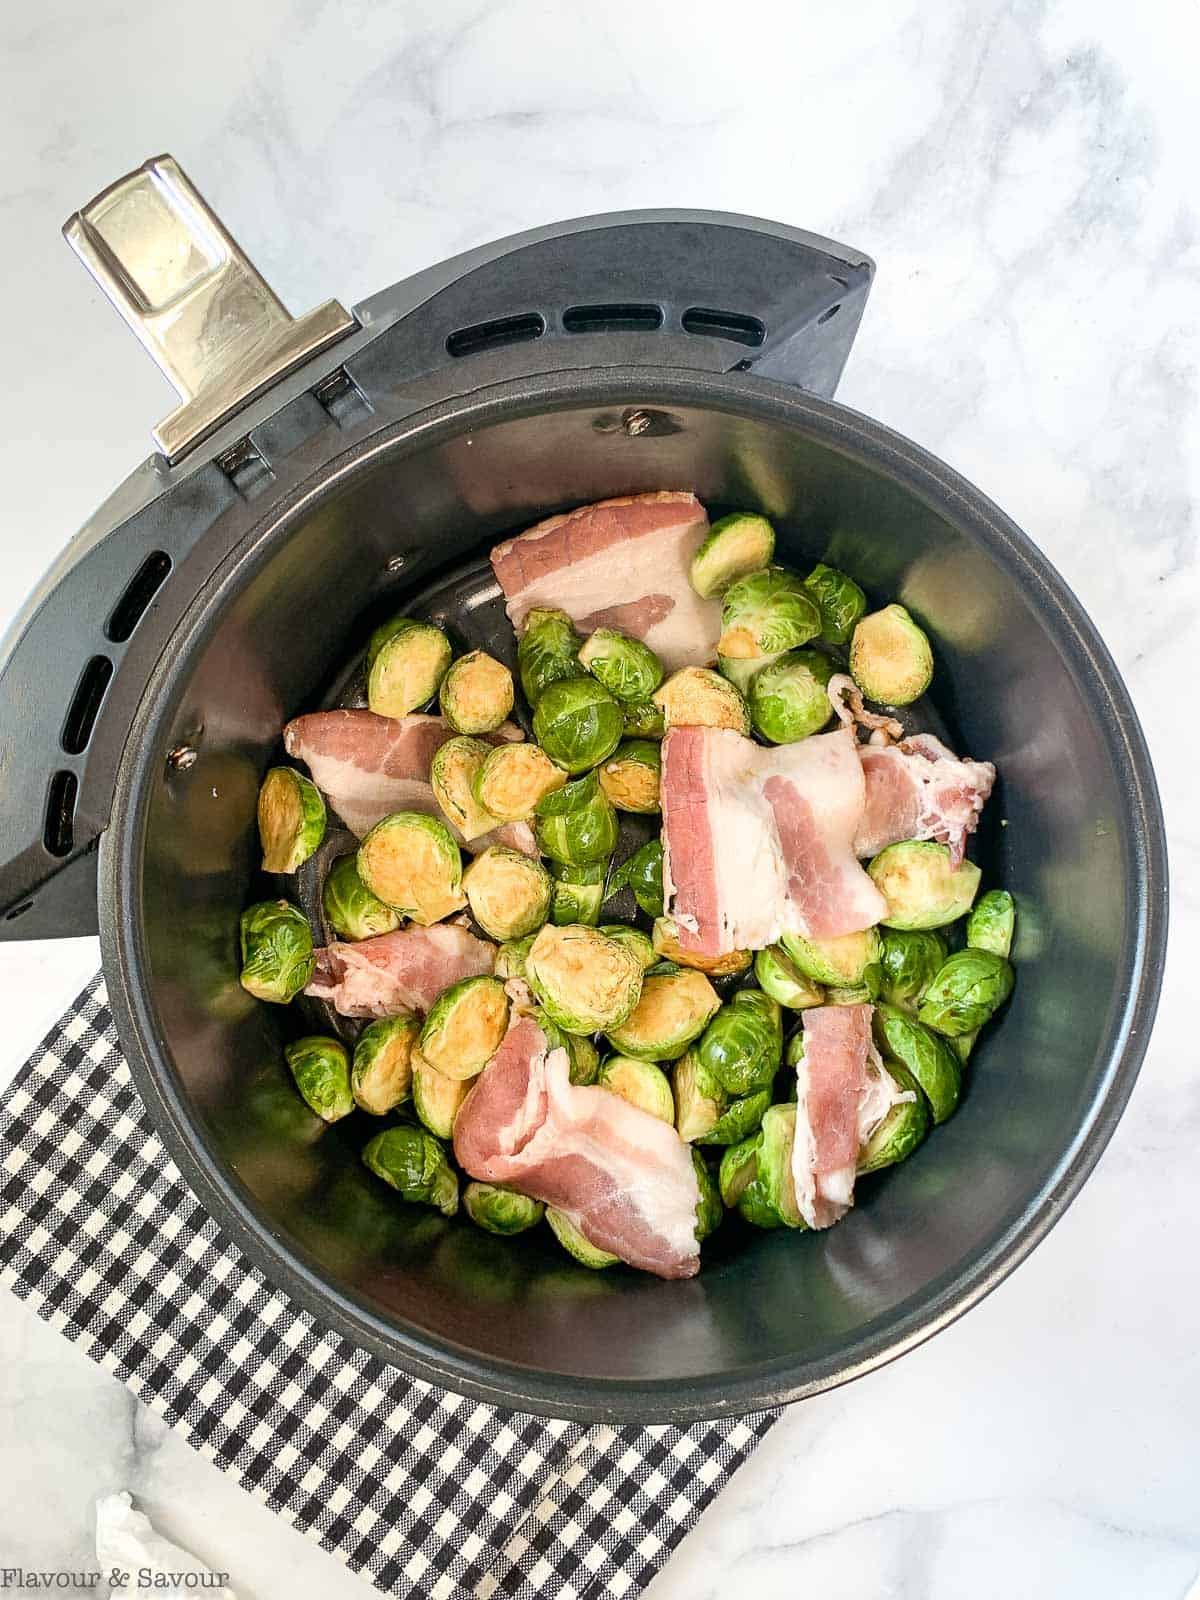 Brussesls sprouts with bacon in air fryer basket before frying